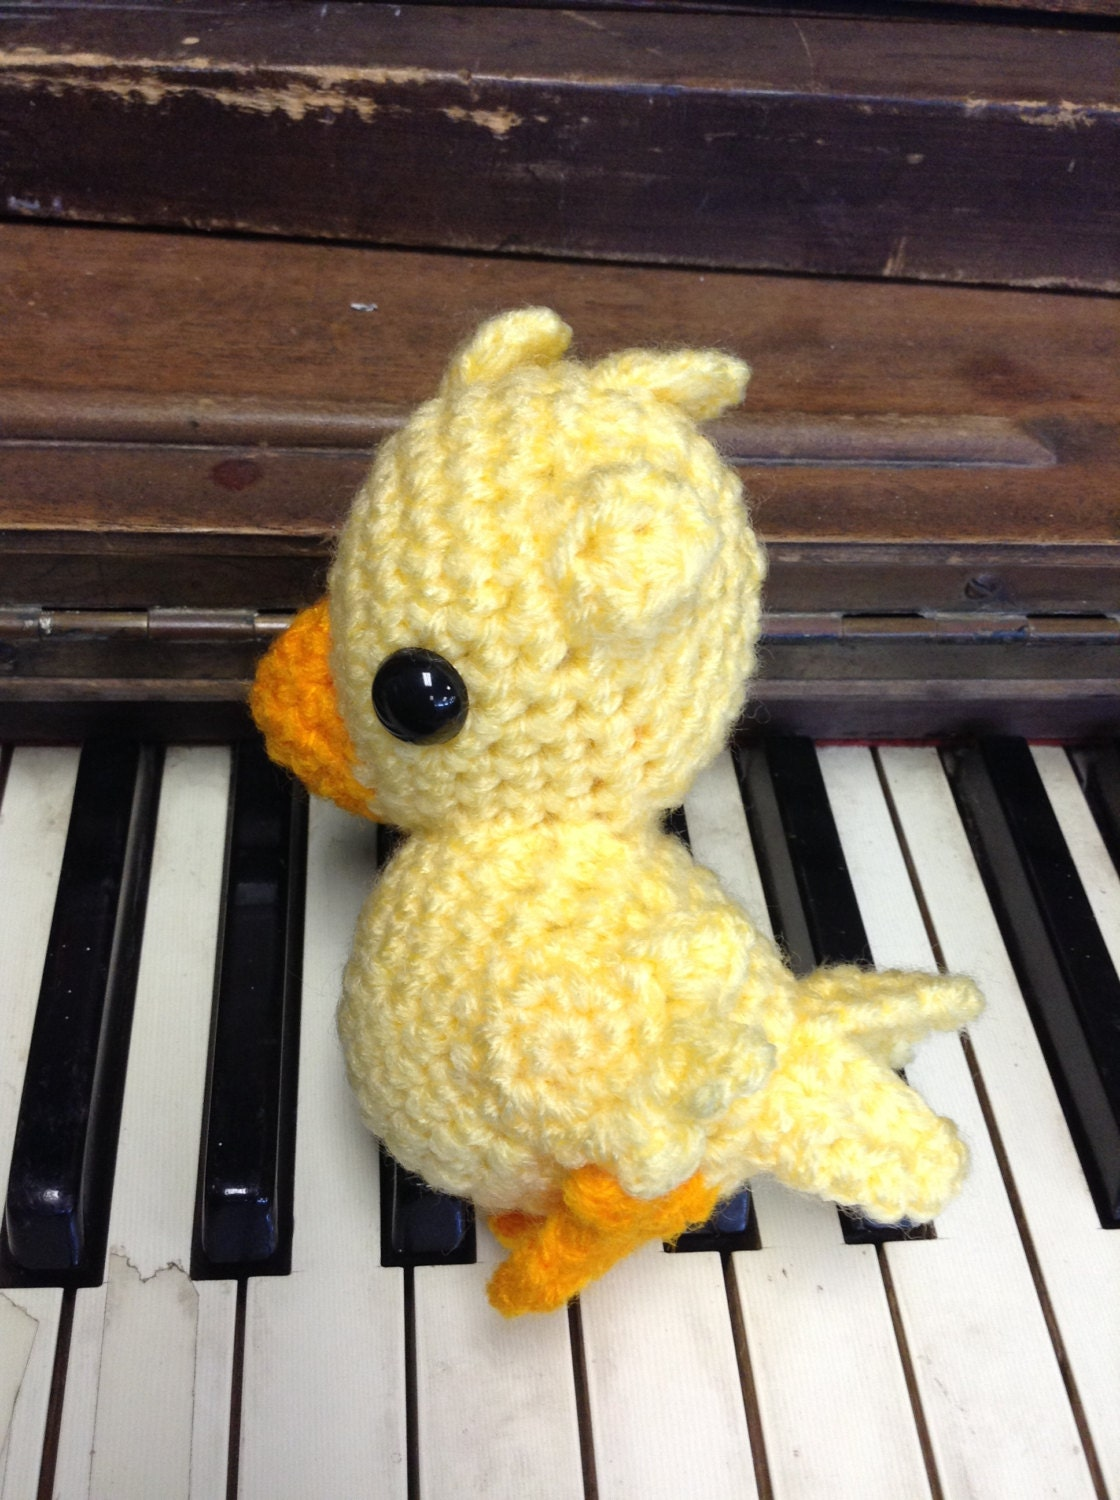 Chocobo Final Fantasy crochet amigurumi plush by CraftedCuteness